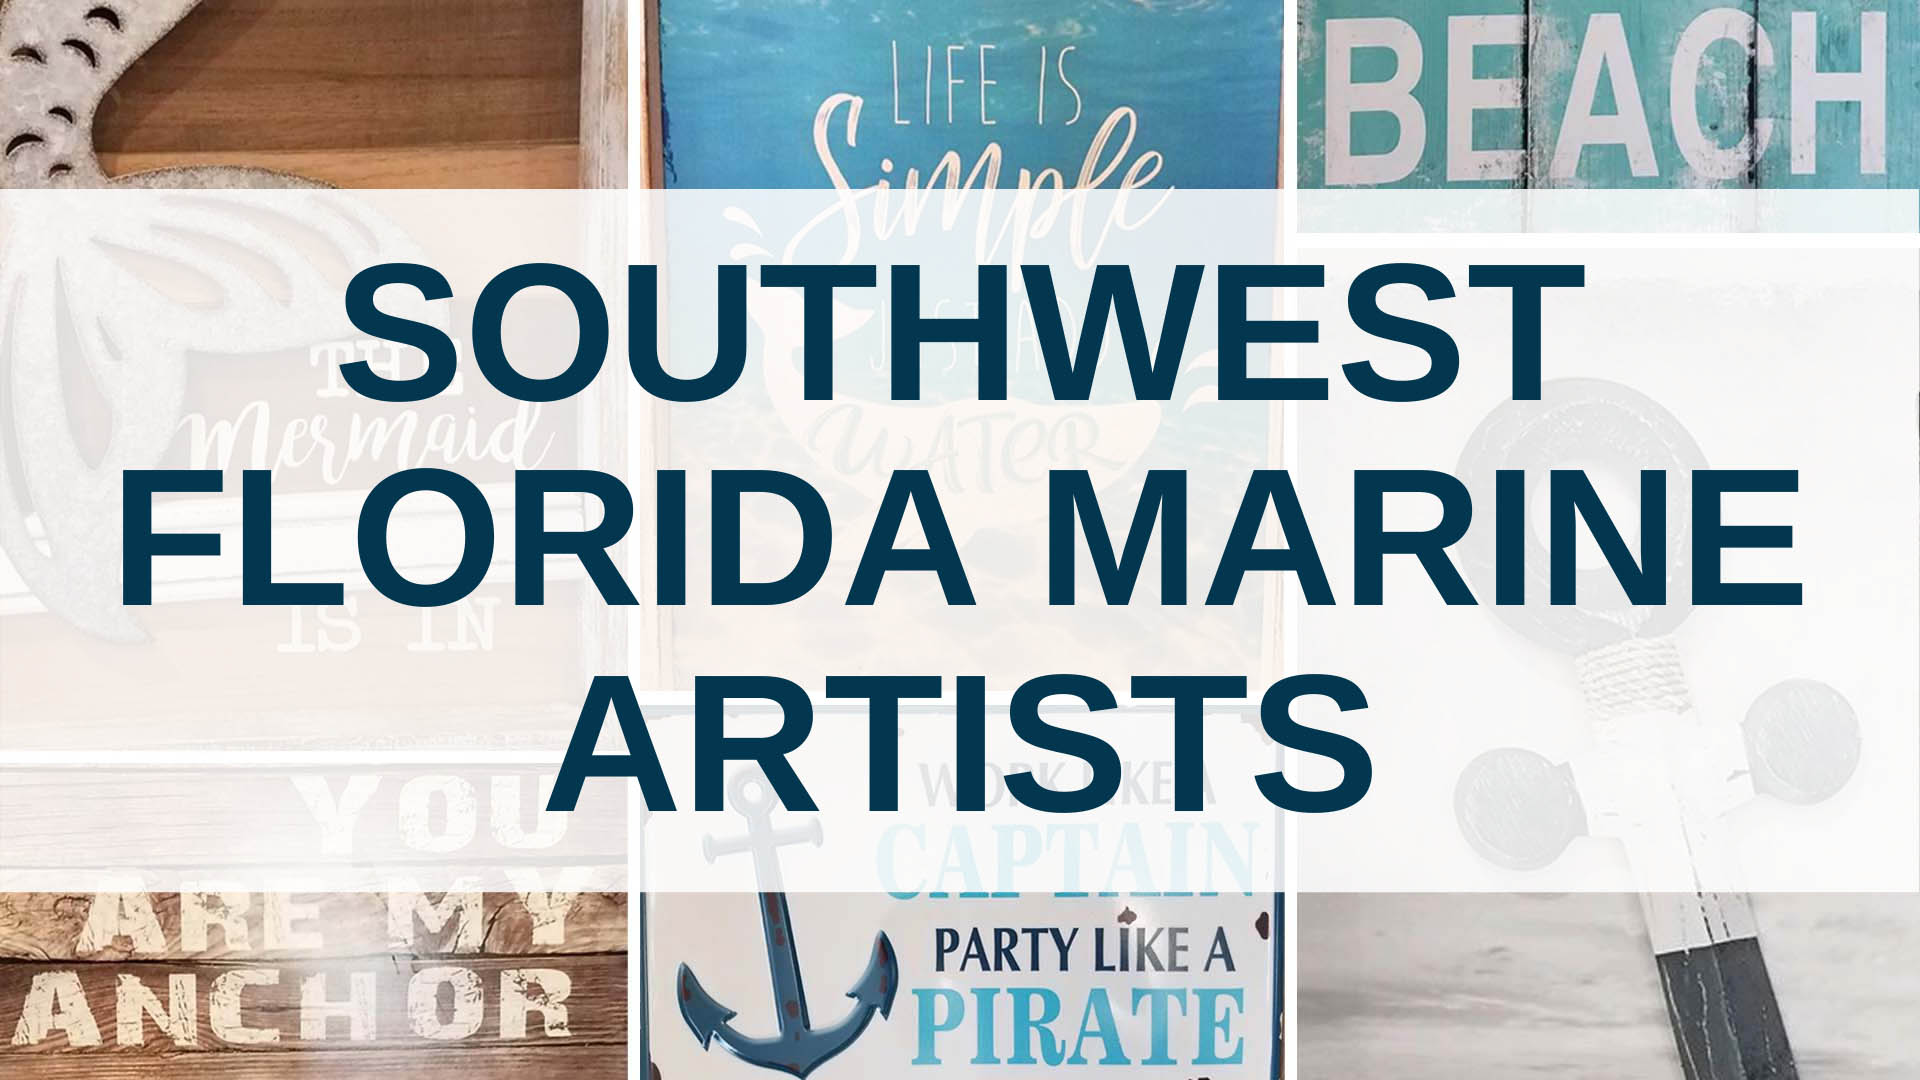 Southwest Florida Marine Artists